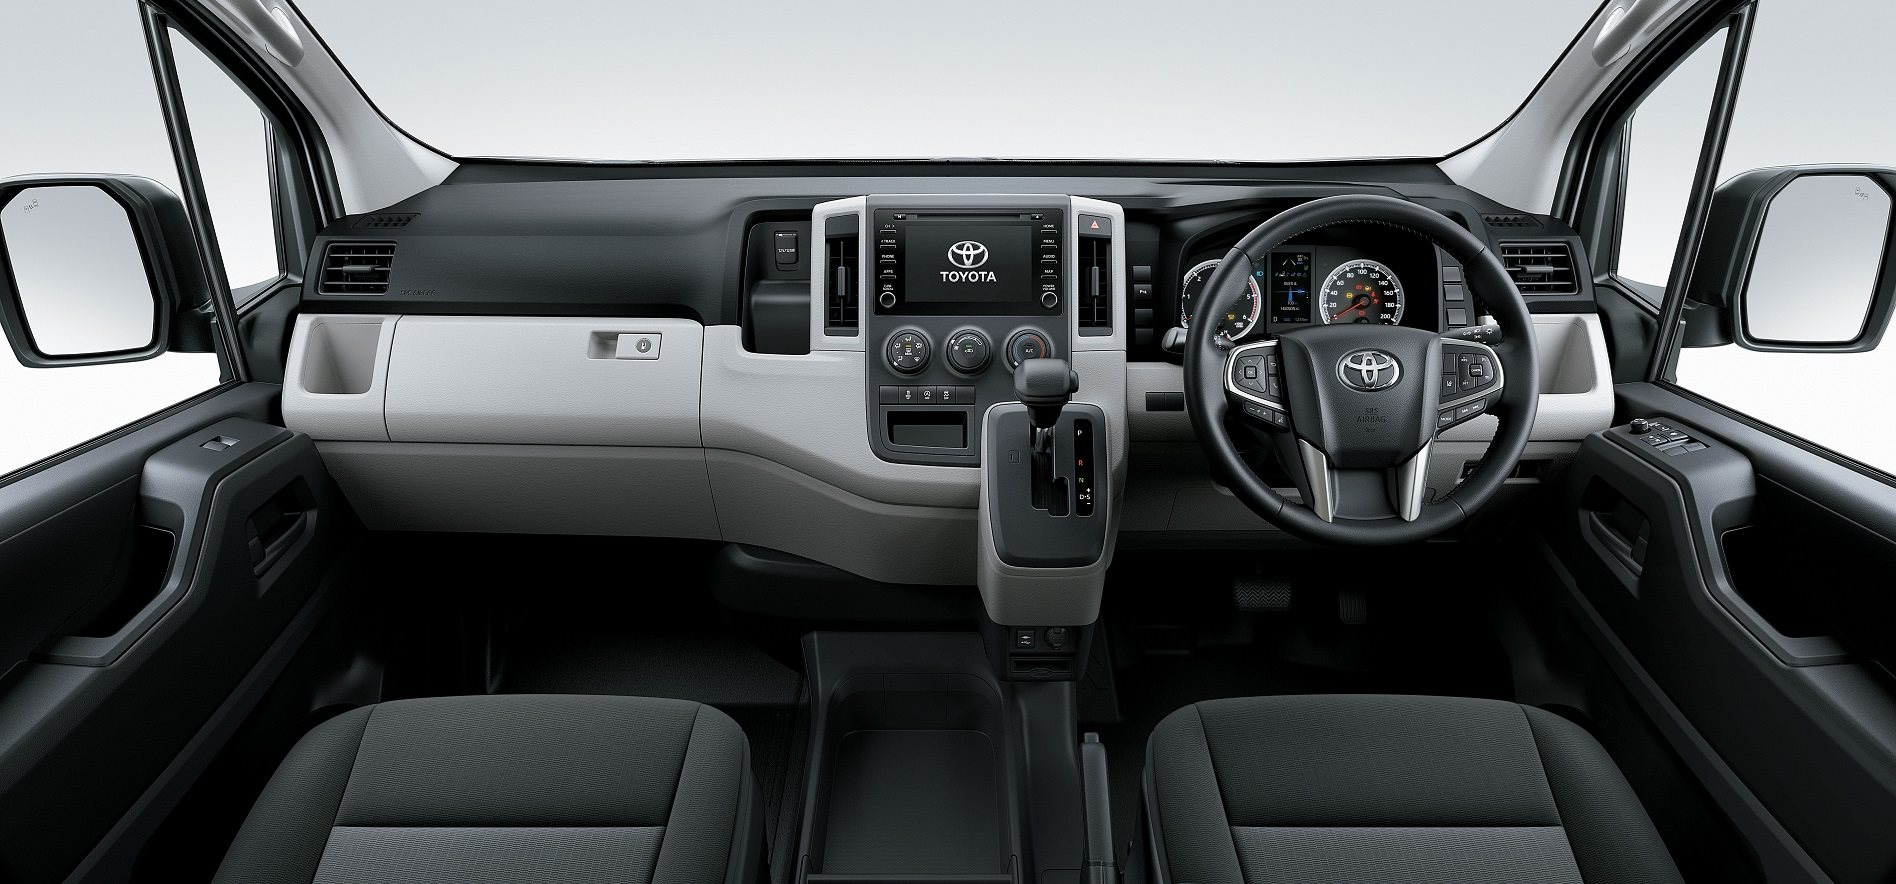 2020 Toyota Hiace Officially Revealed